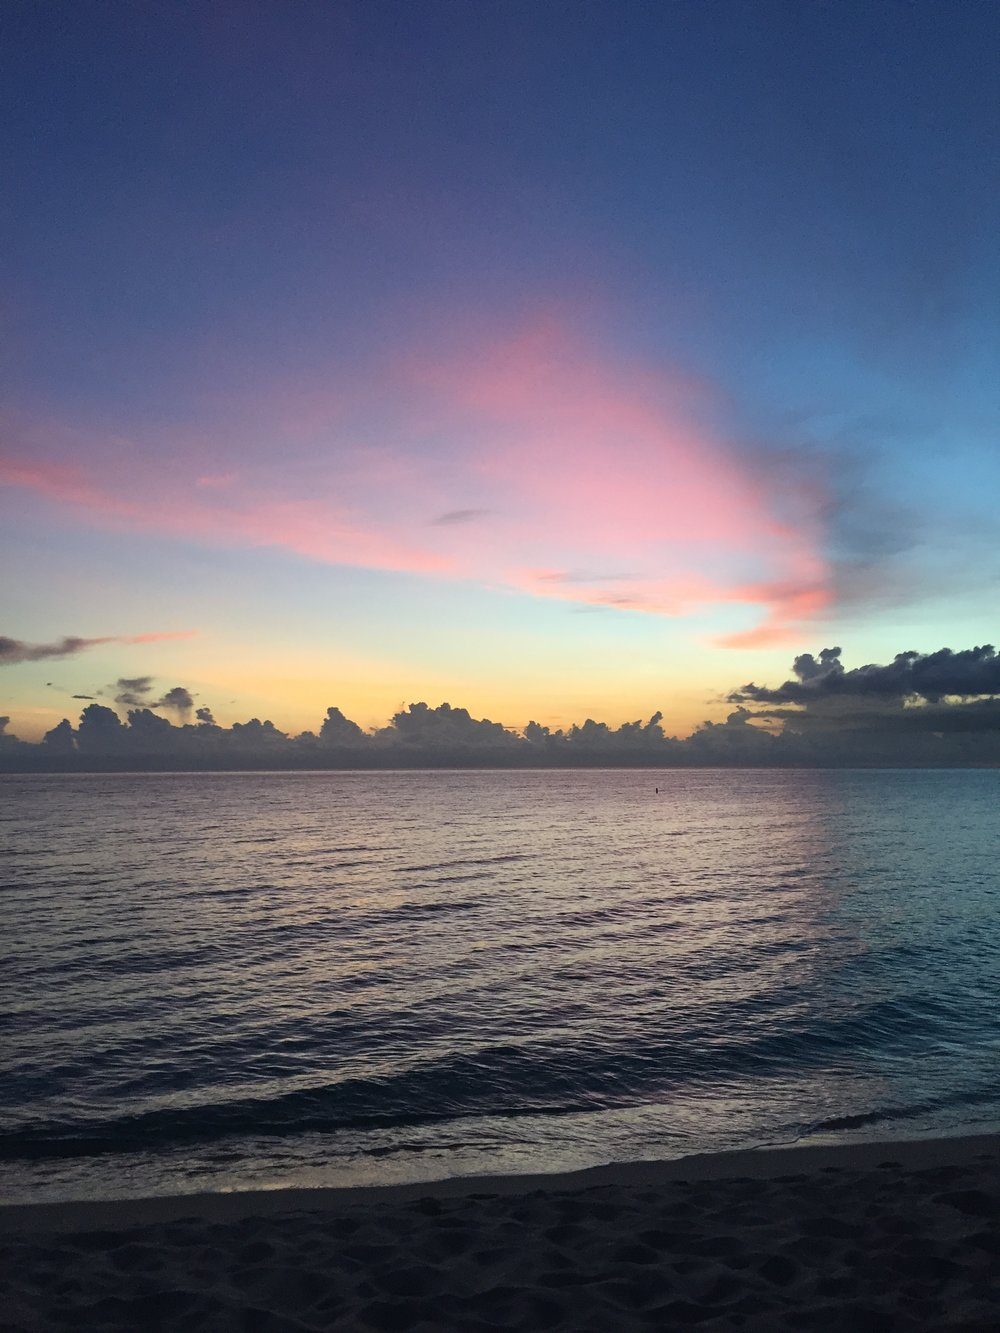 Cayman Islands' 7 Mile Beach at Sunset - 2016